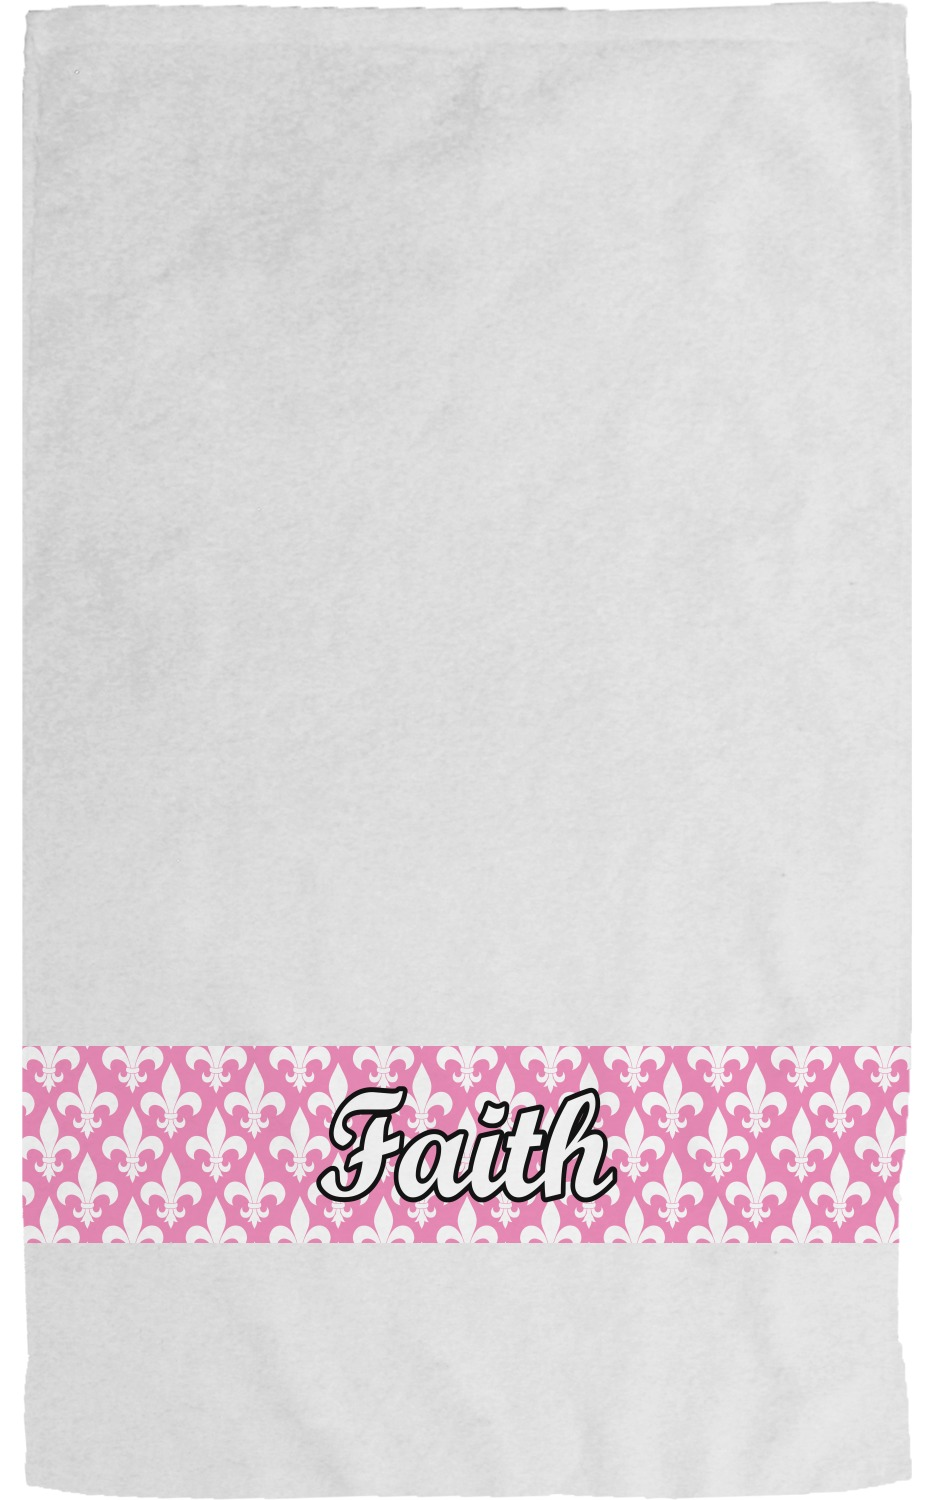 Go For It Embroidery Fleur De Lis Saints Bath Towels